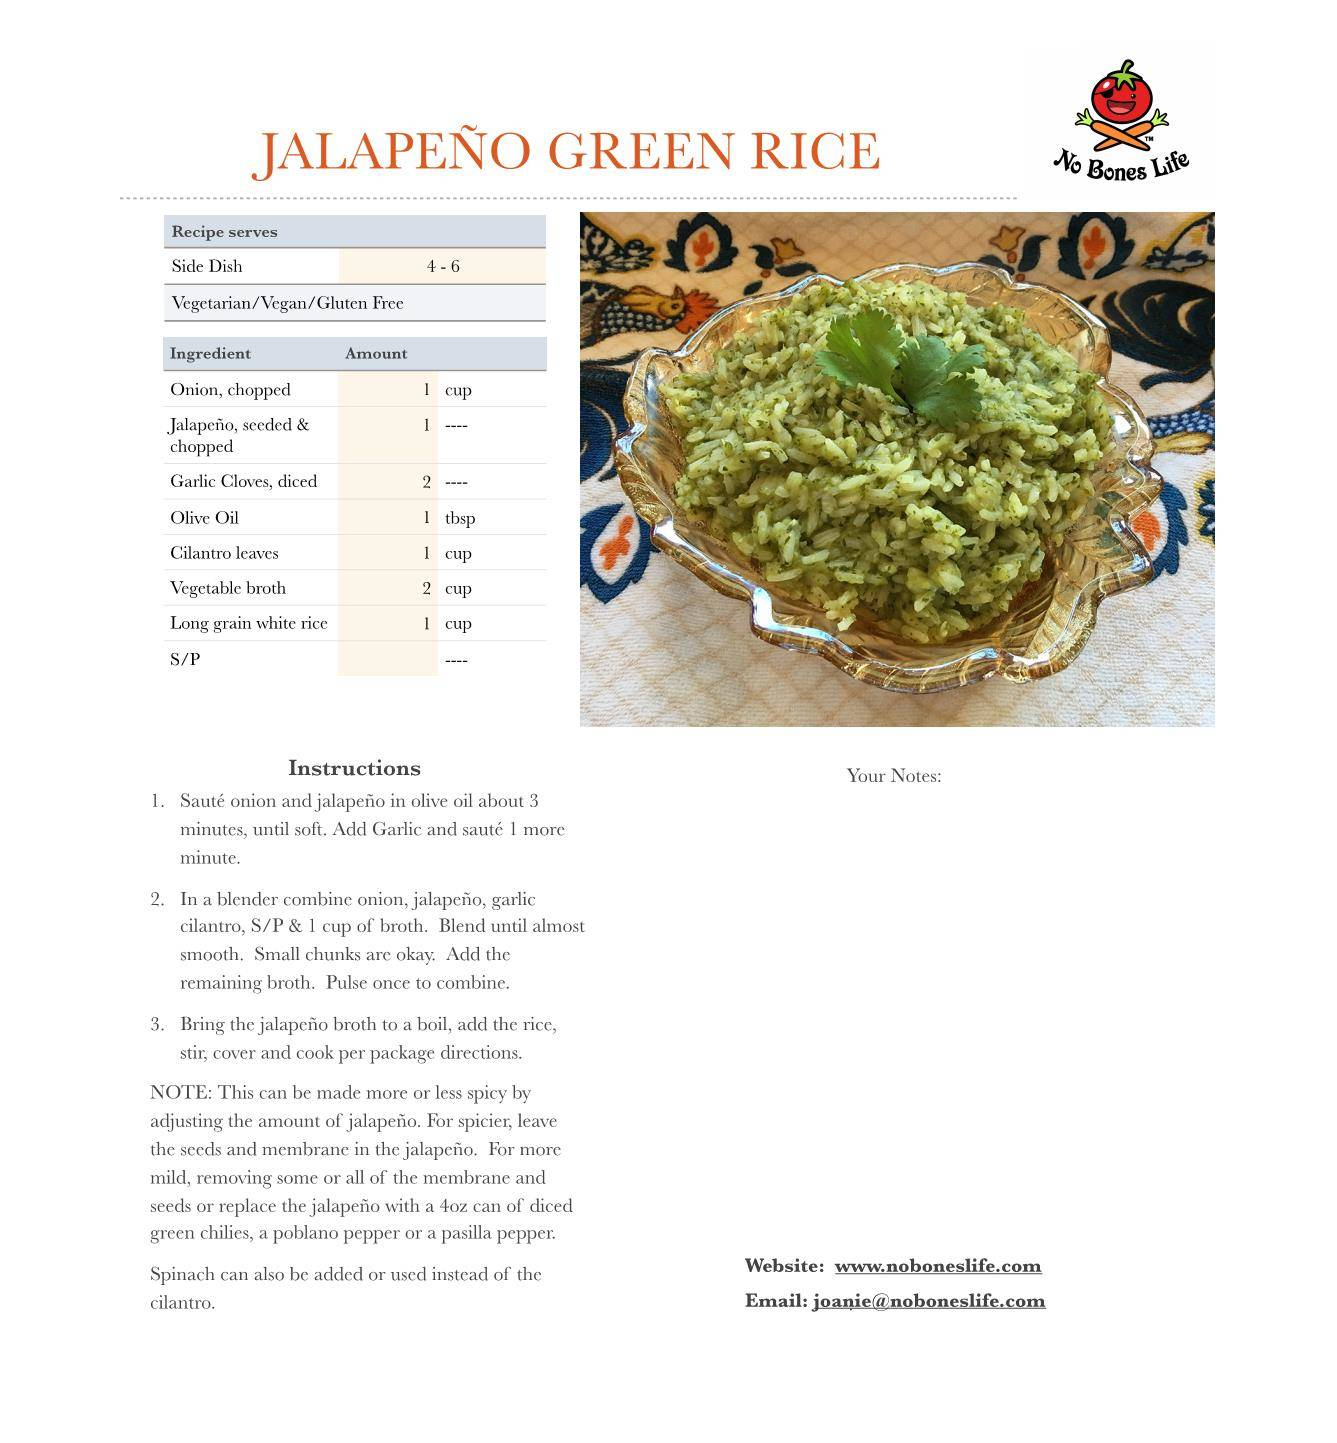 jalapeno green rice